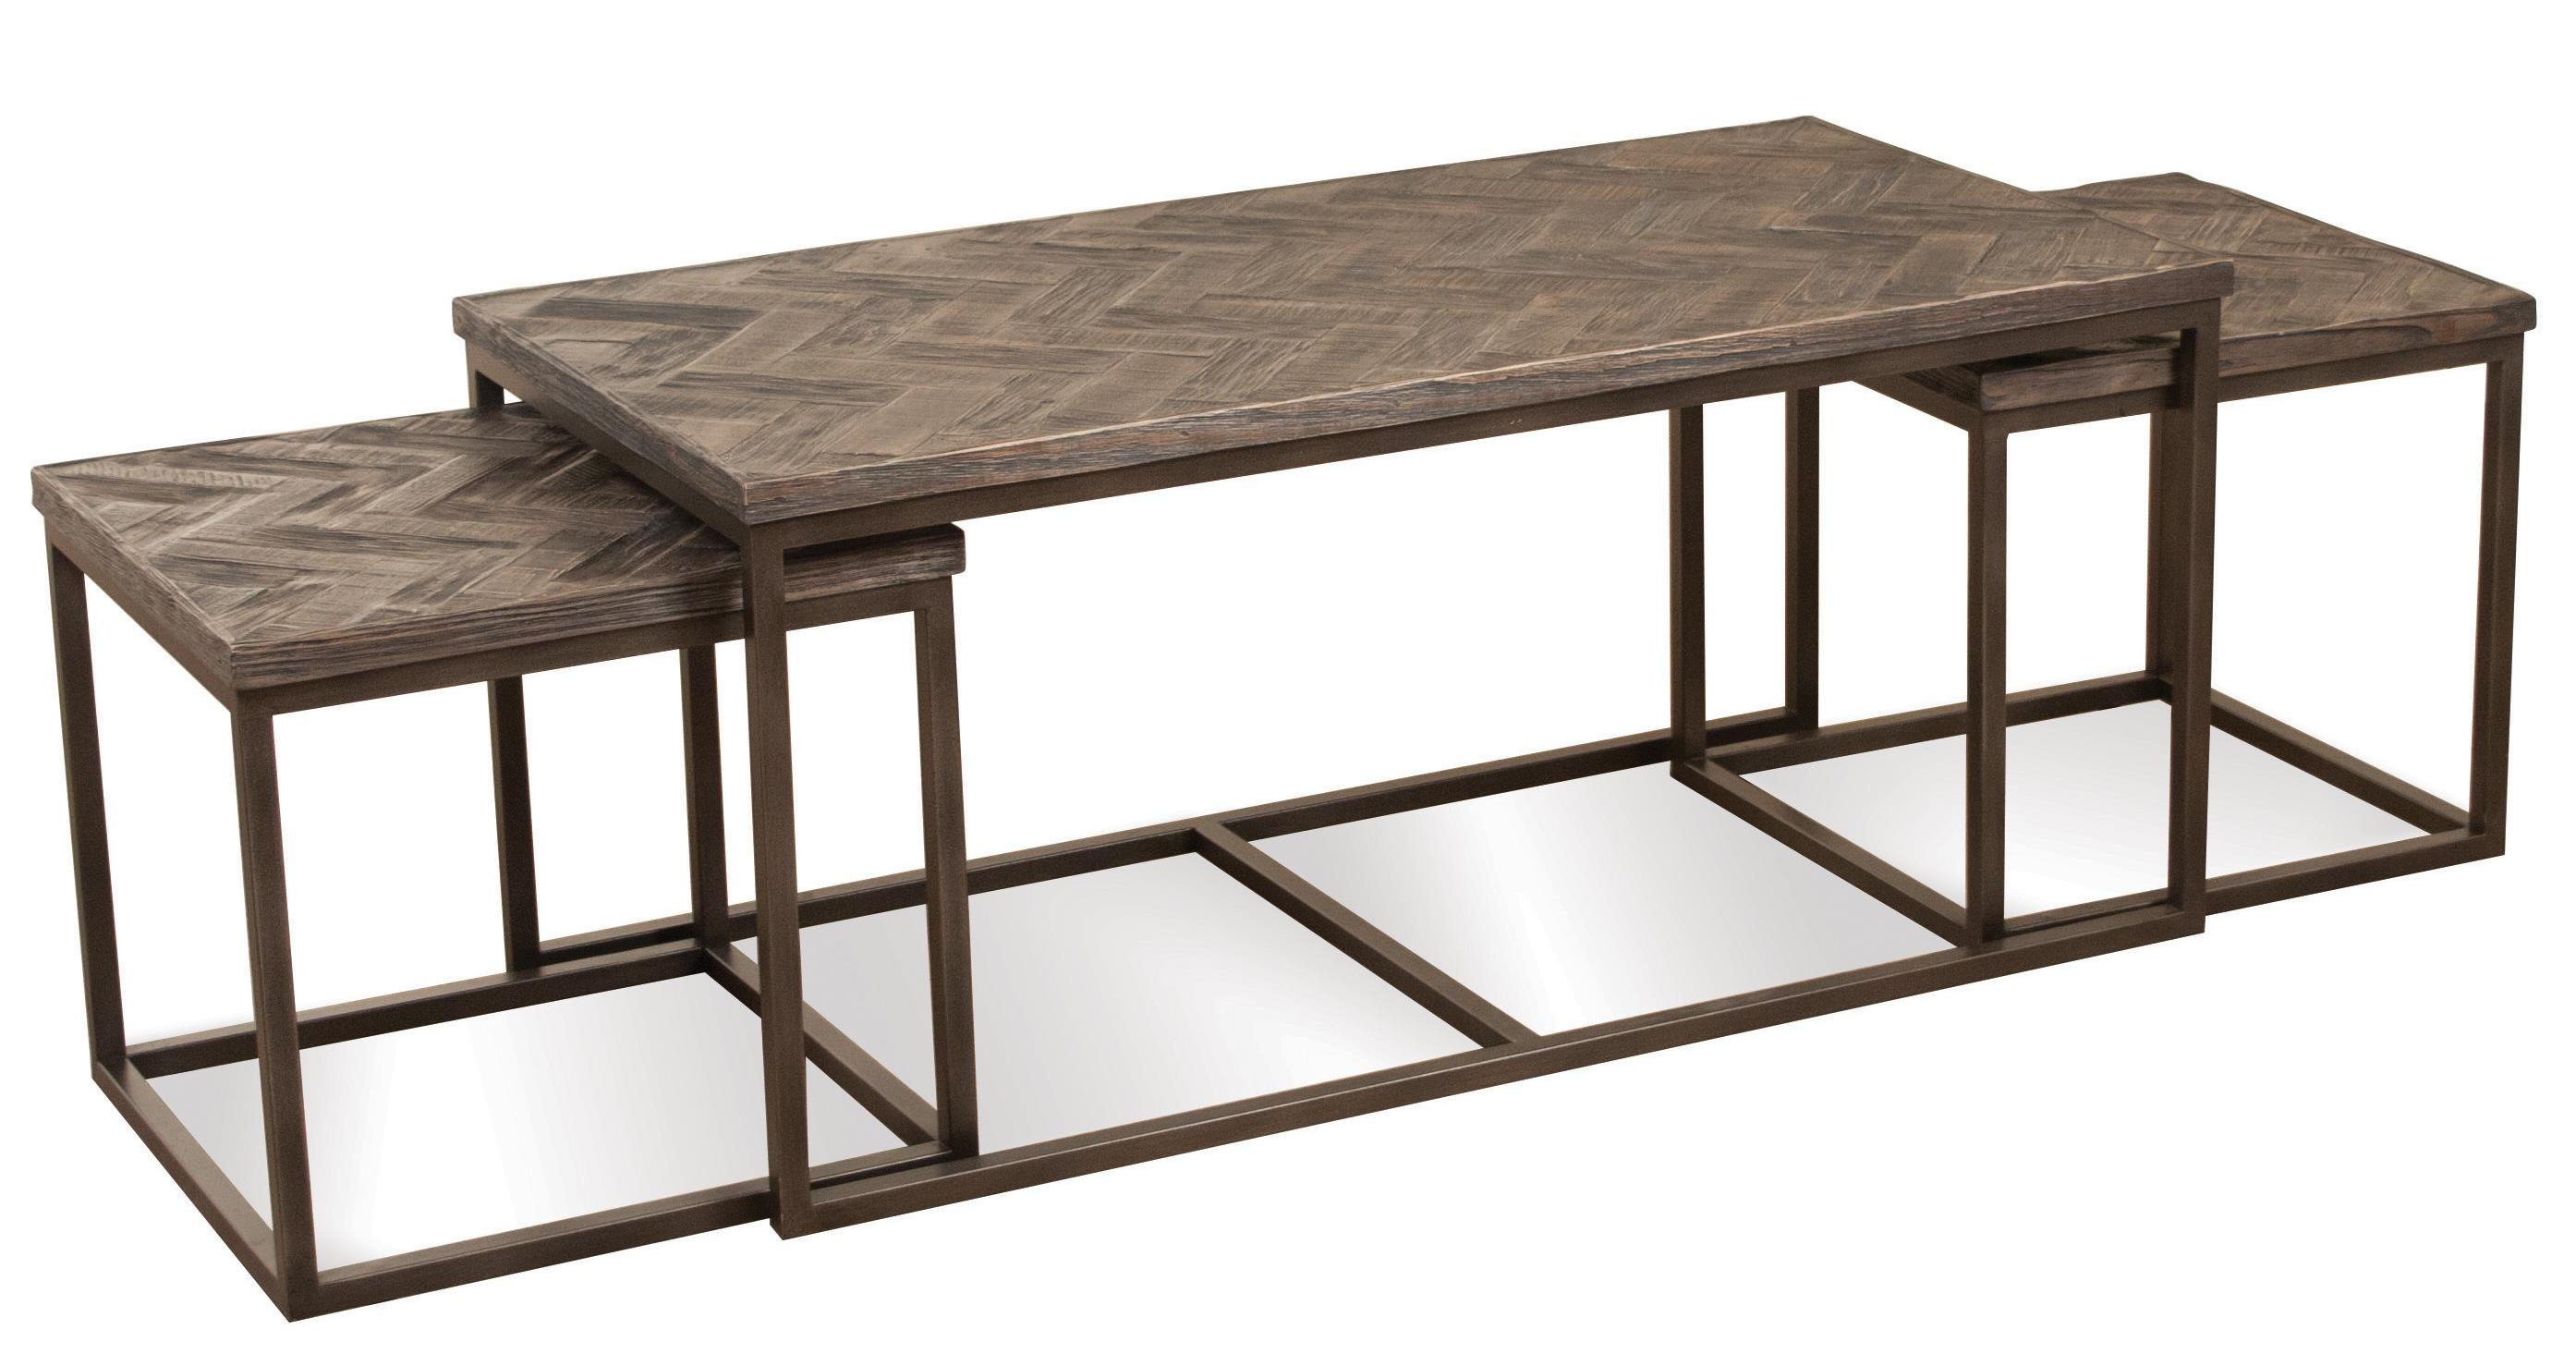 pc rectangular nesting coffee table by riverside furniture  -  pc rectangular nesting coffee table